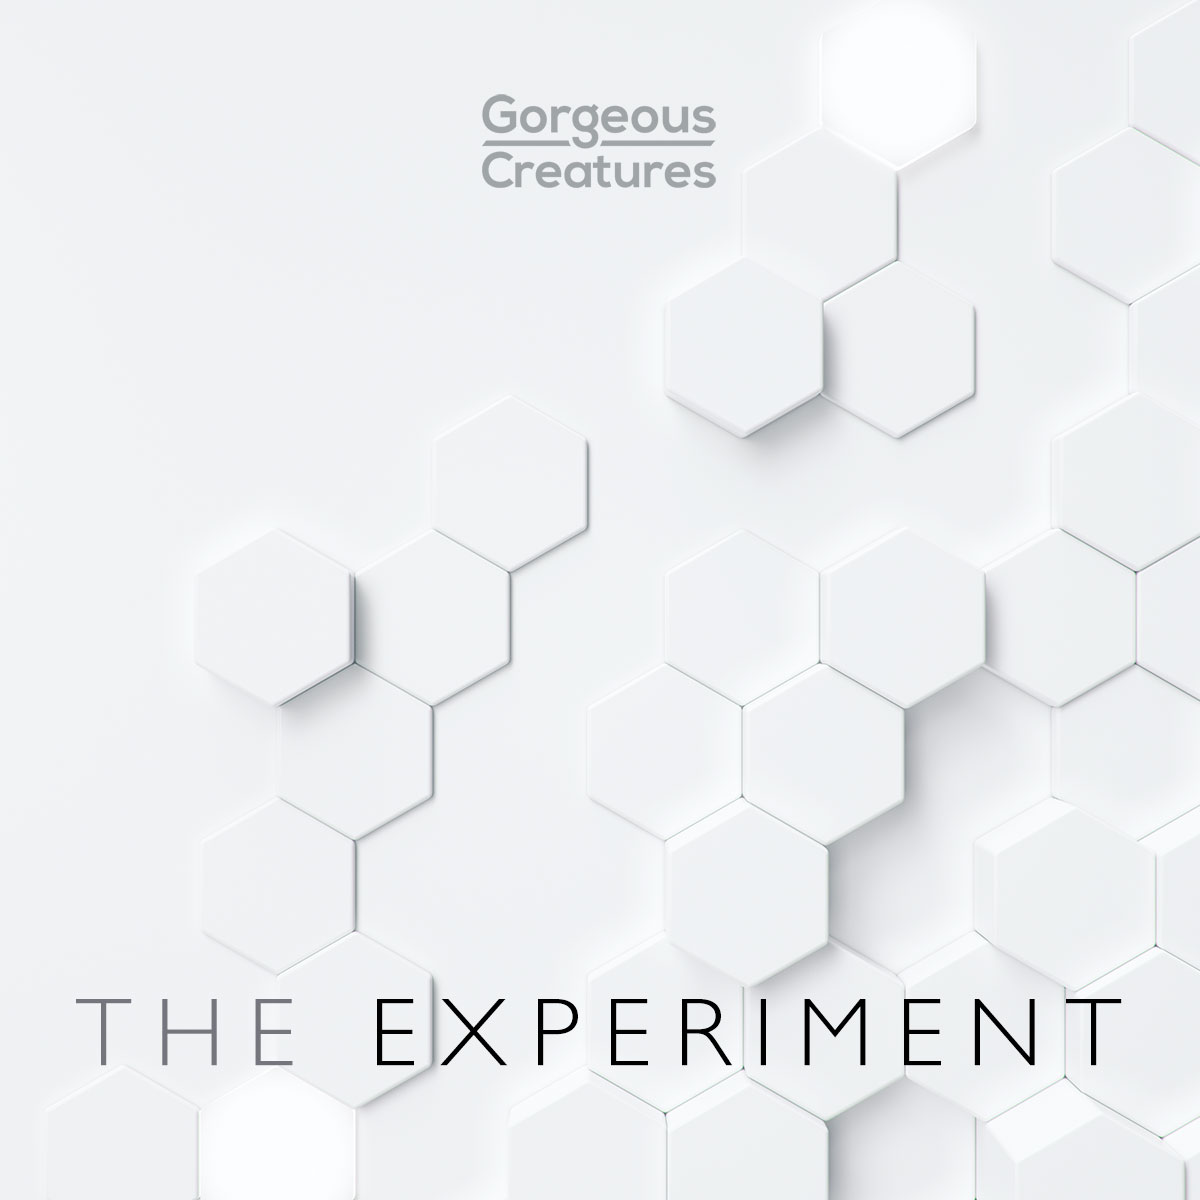 The Experiment by Gorgeous Creatures